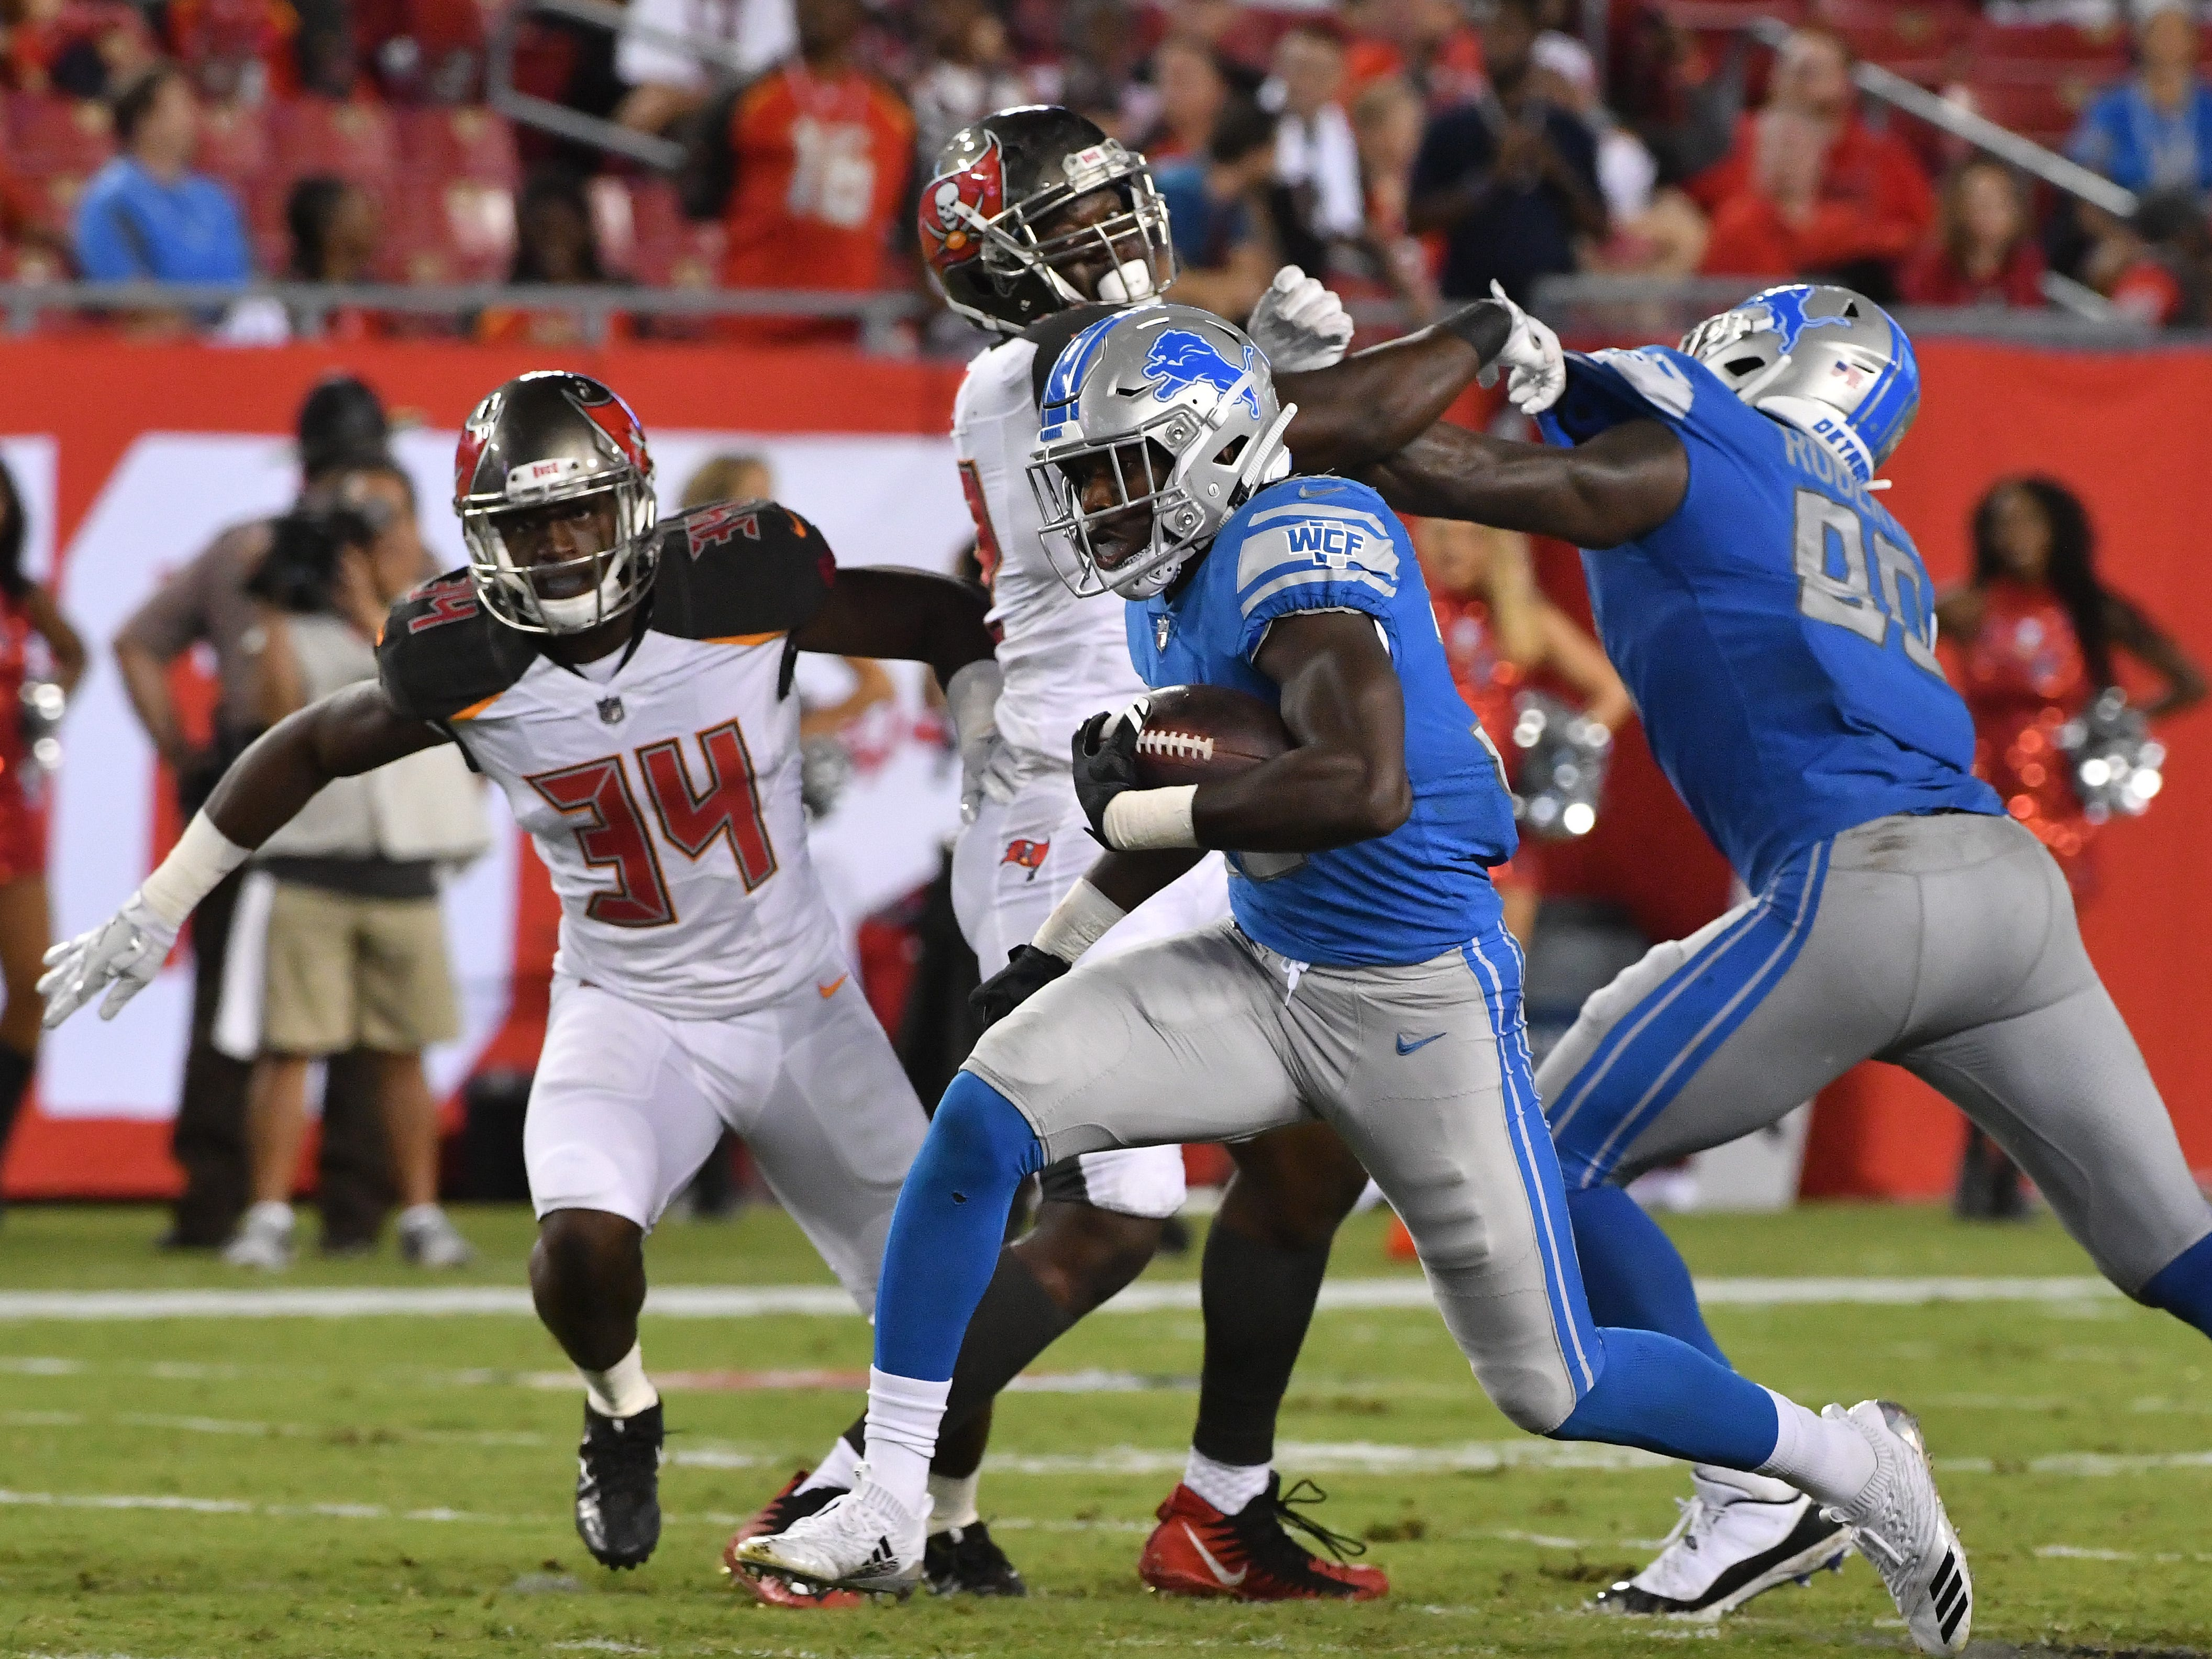 Lions rookie running back Kerryon Johnson gets a block and heads up field in the third quarter.